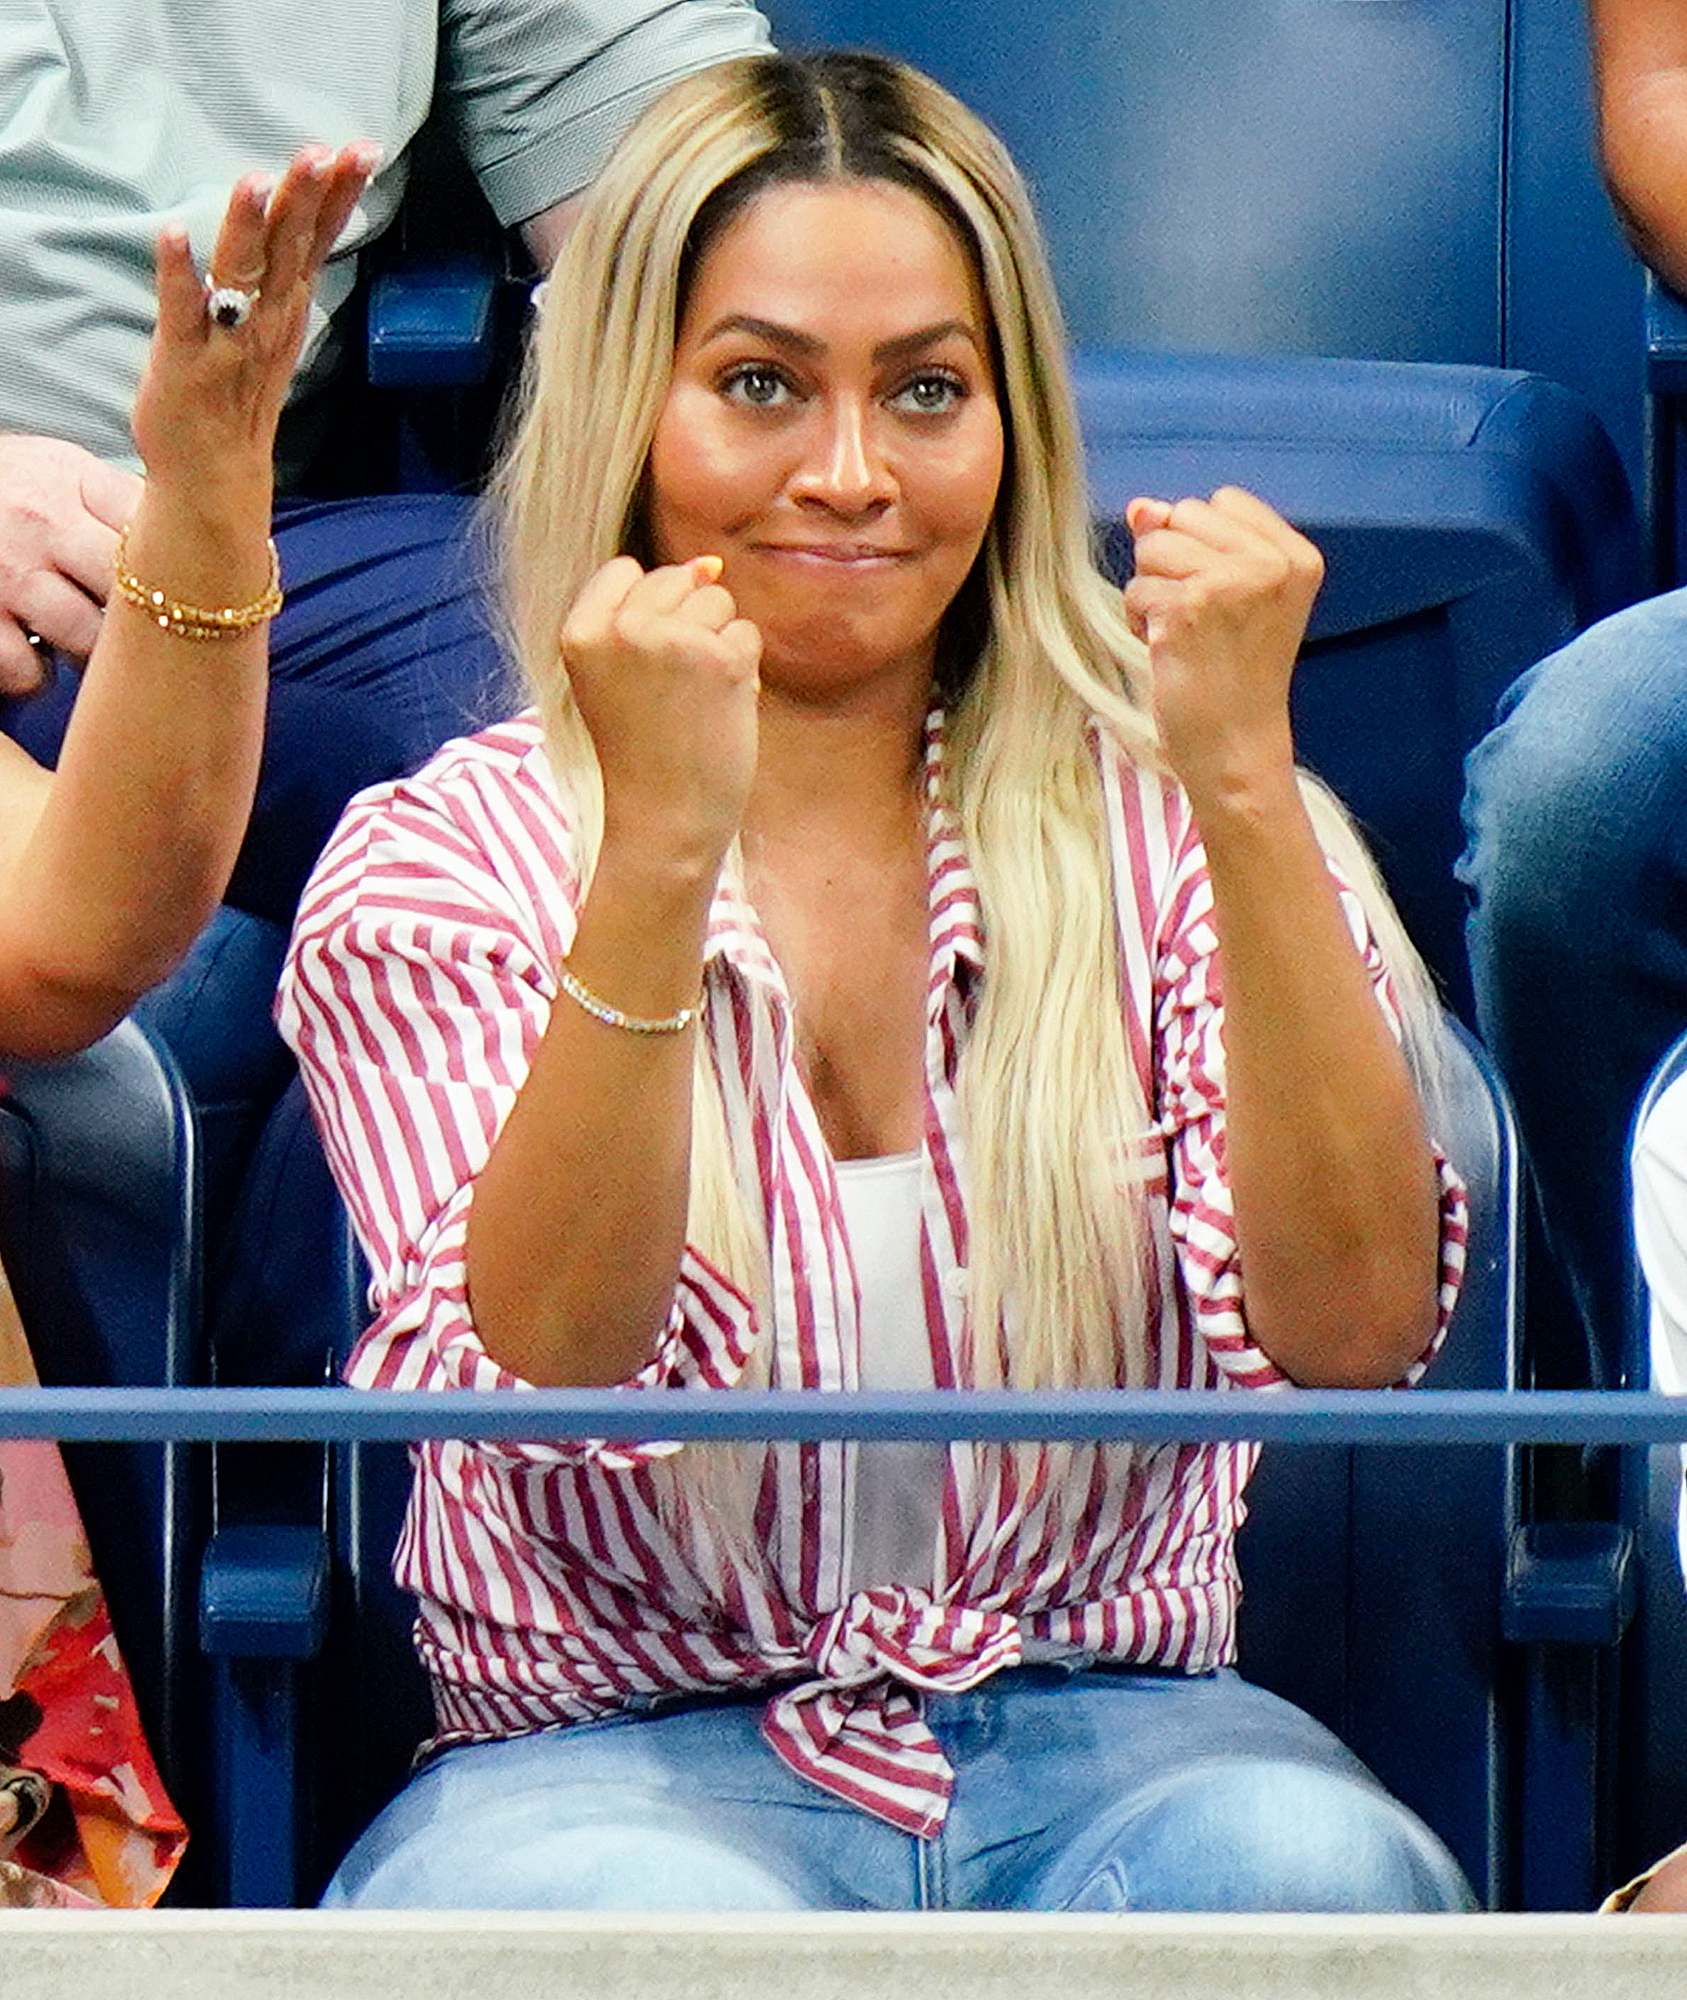 Lala Anthony Us Open 2018 - The actress shook her fists during the September 4 match.